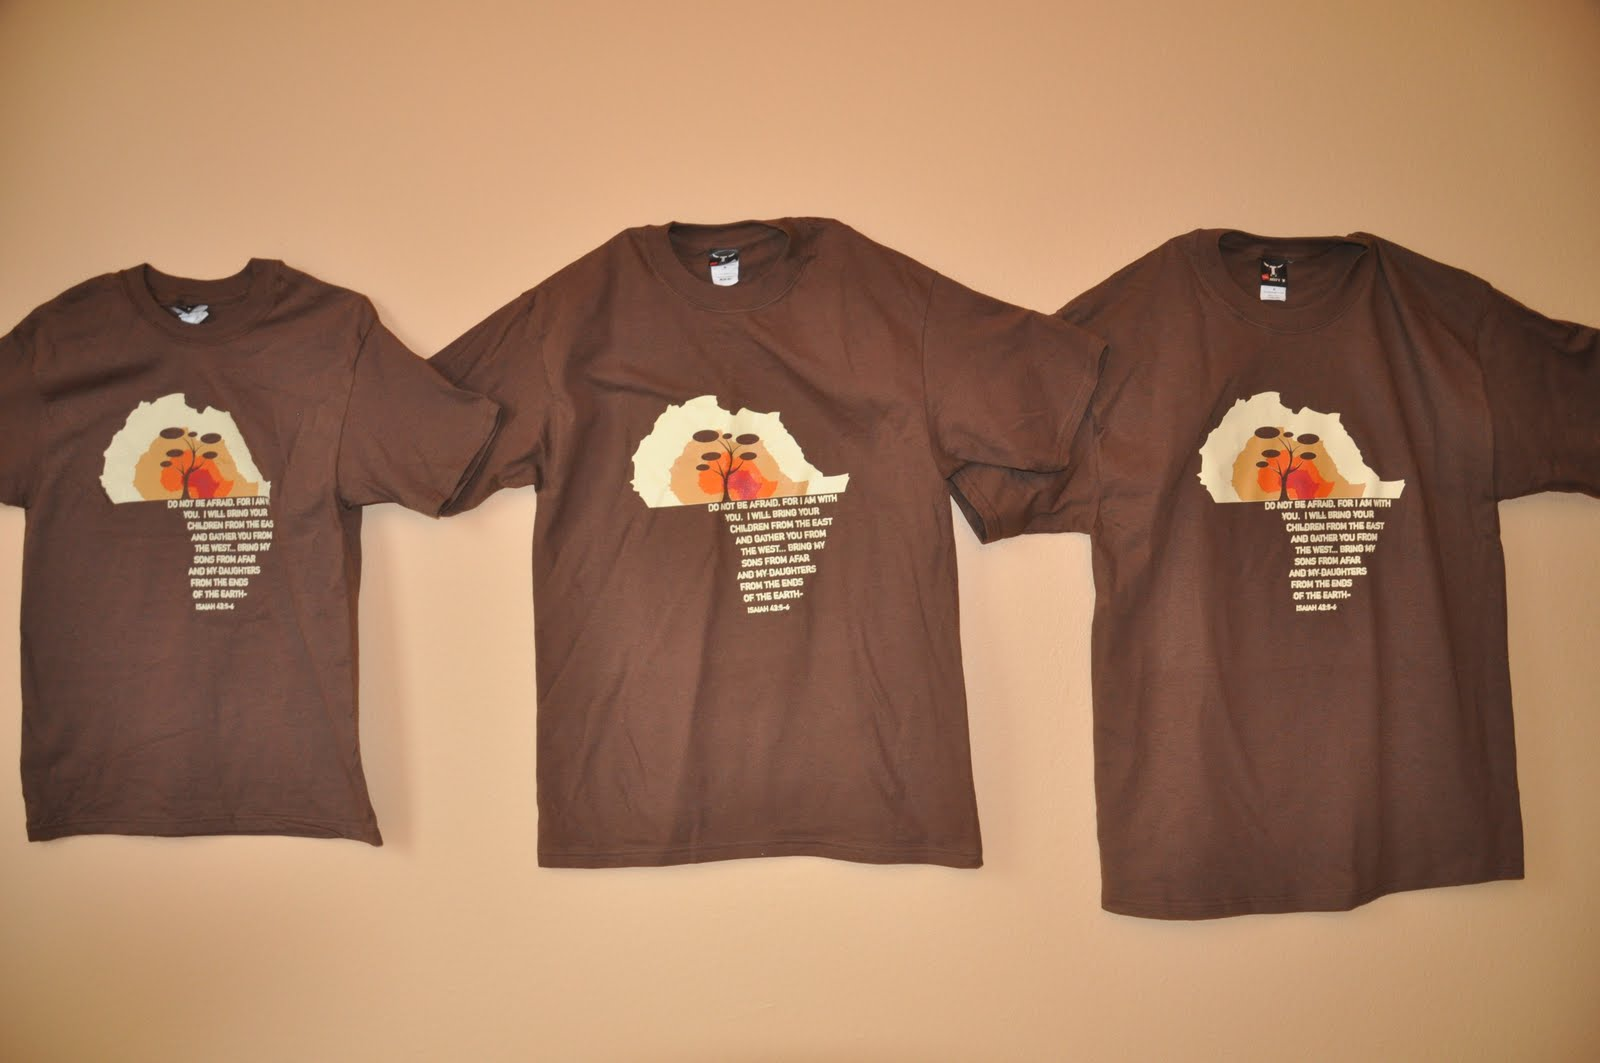 The fulmer 39 s story adoption fundraiser for Adoption fundraiser t shirts